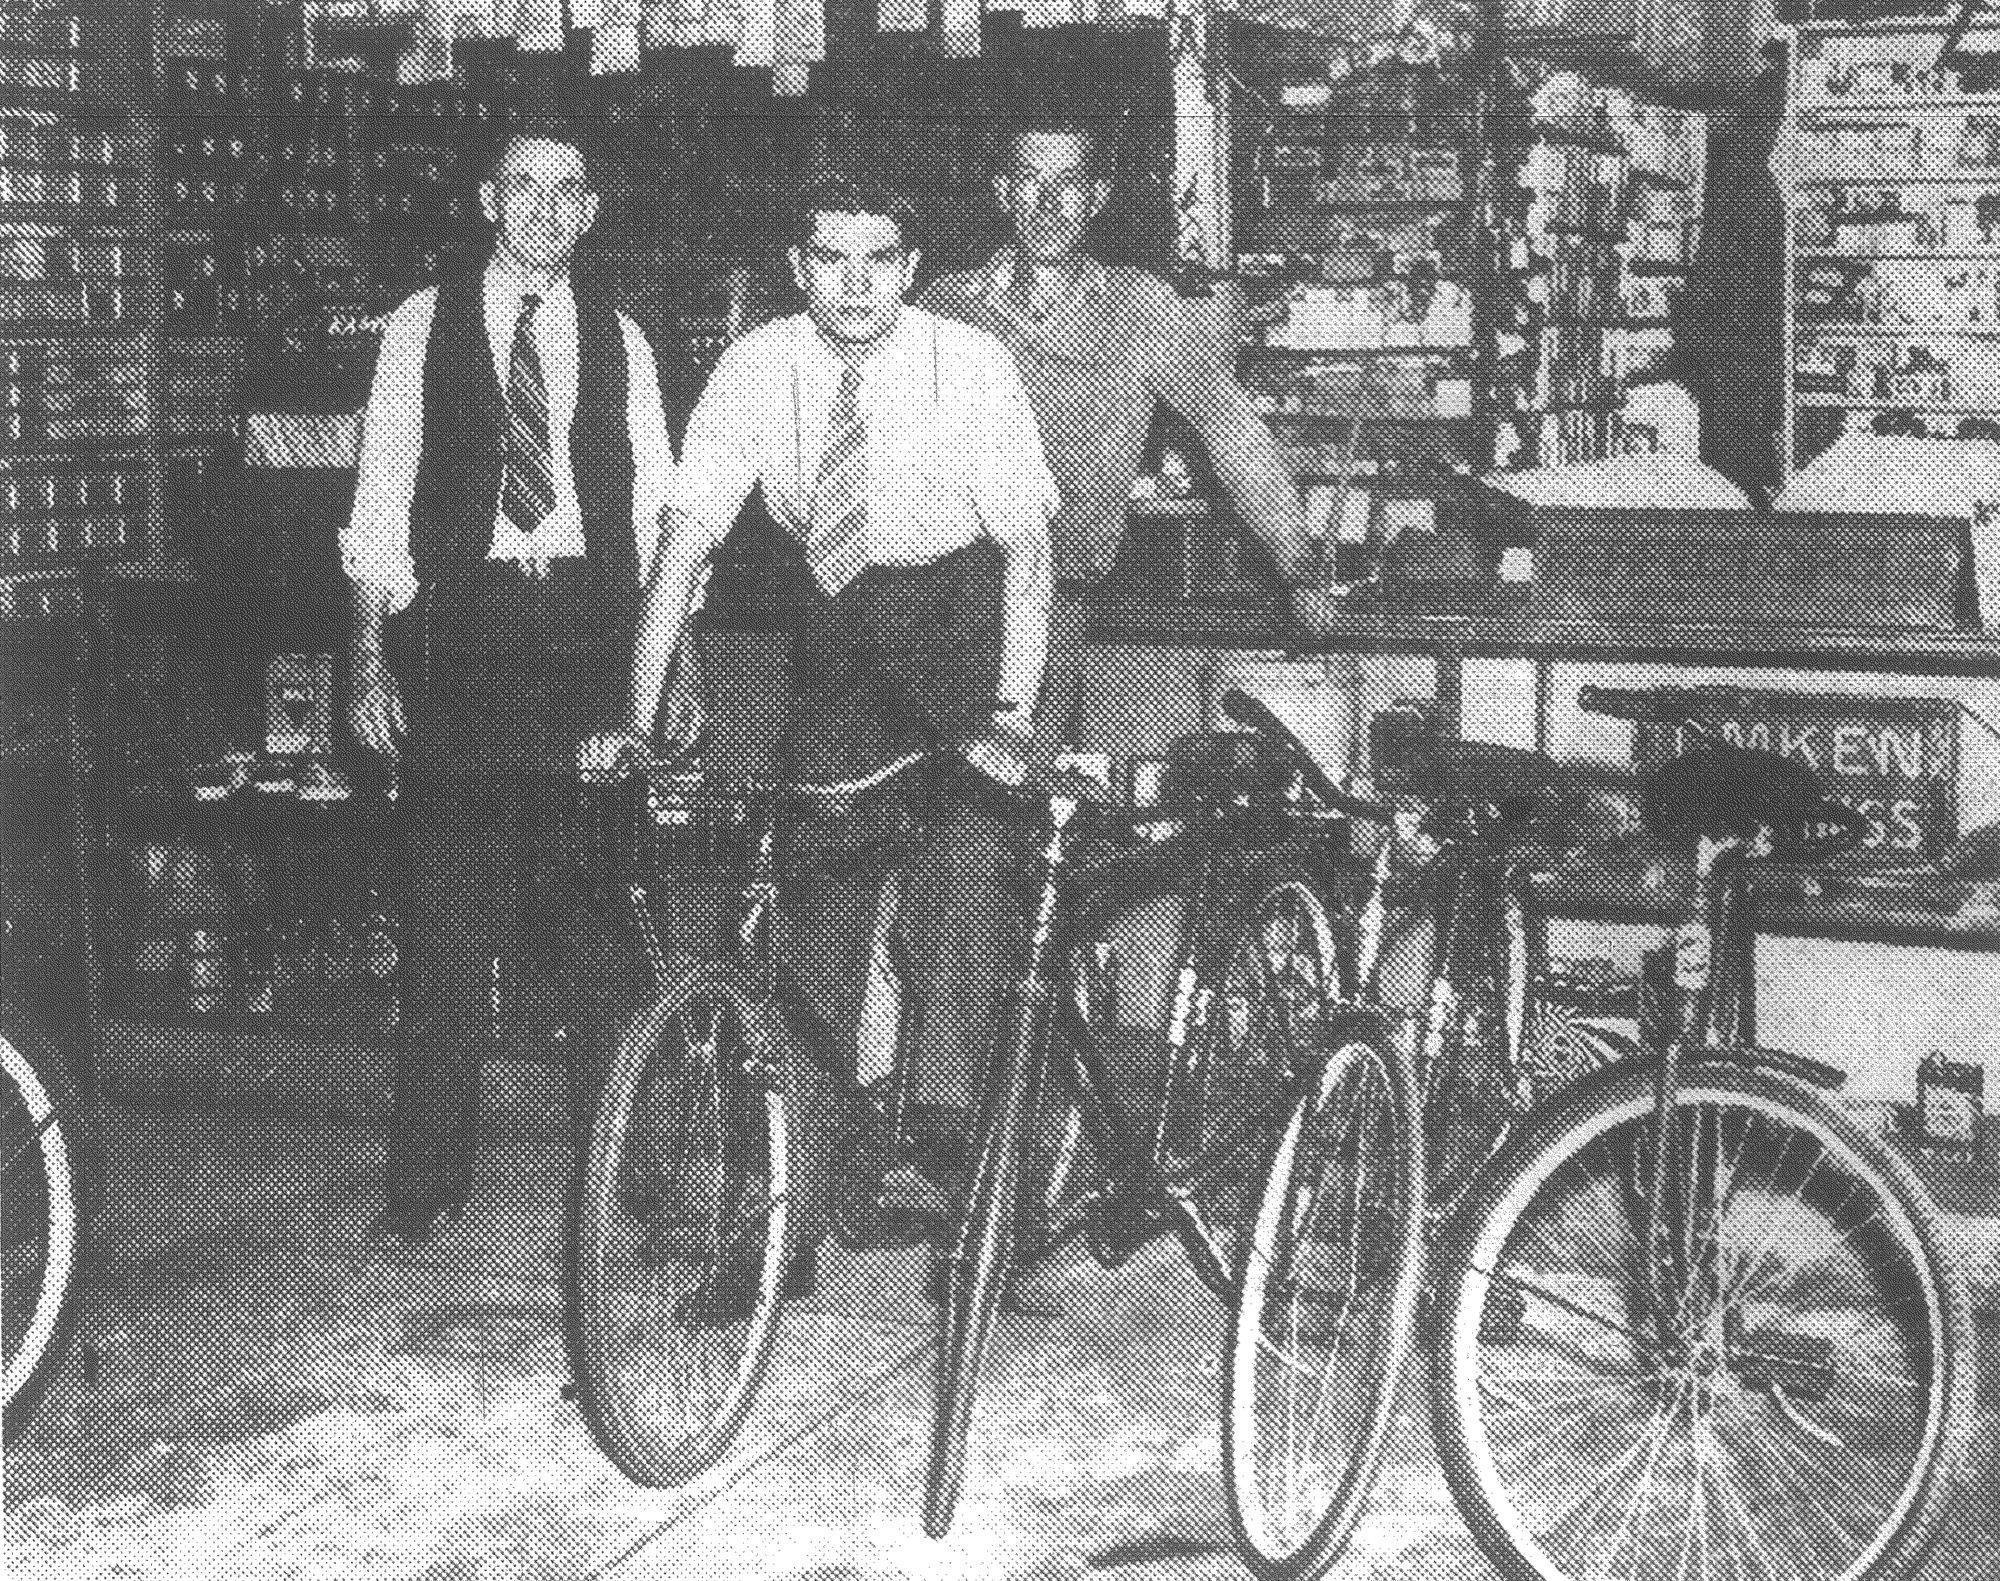 SUMTER ITEM FILE PHOTOs  Aubrey Hatfield is seen on his Victory bicycle he rode from Columbia to Sumter in three hours in 1943. At the left is his father, A. J. Hatfield, owner of the bicycle and automobile accessories business that bears his name, and at the right is Jim Shirer, bicycle repair man for A. J. Hatfield.